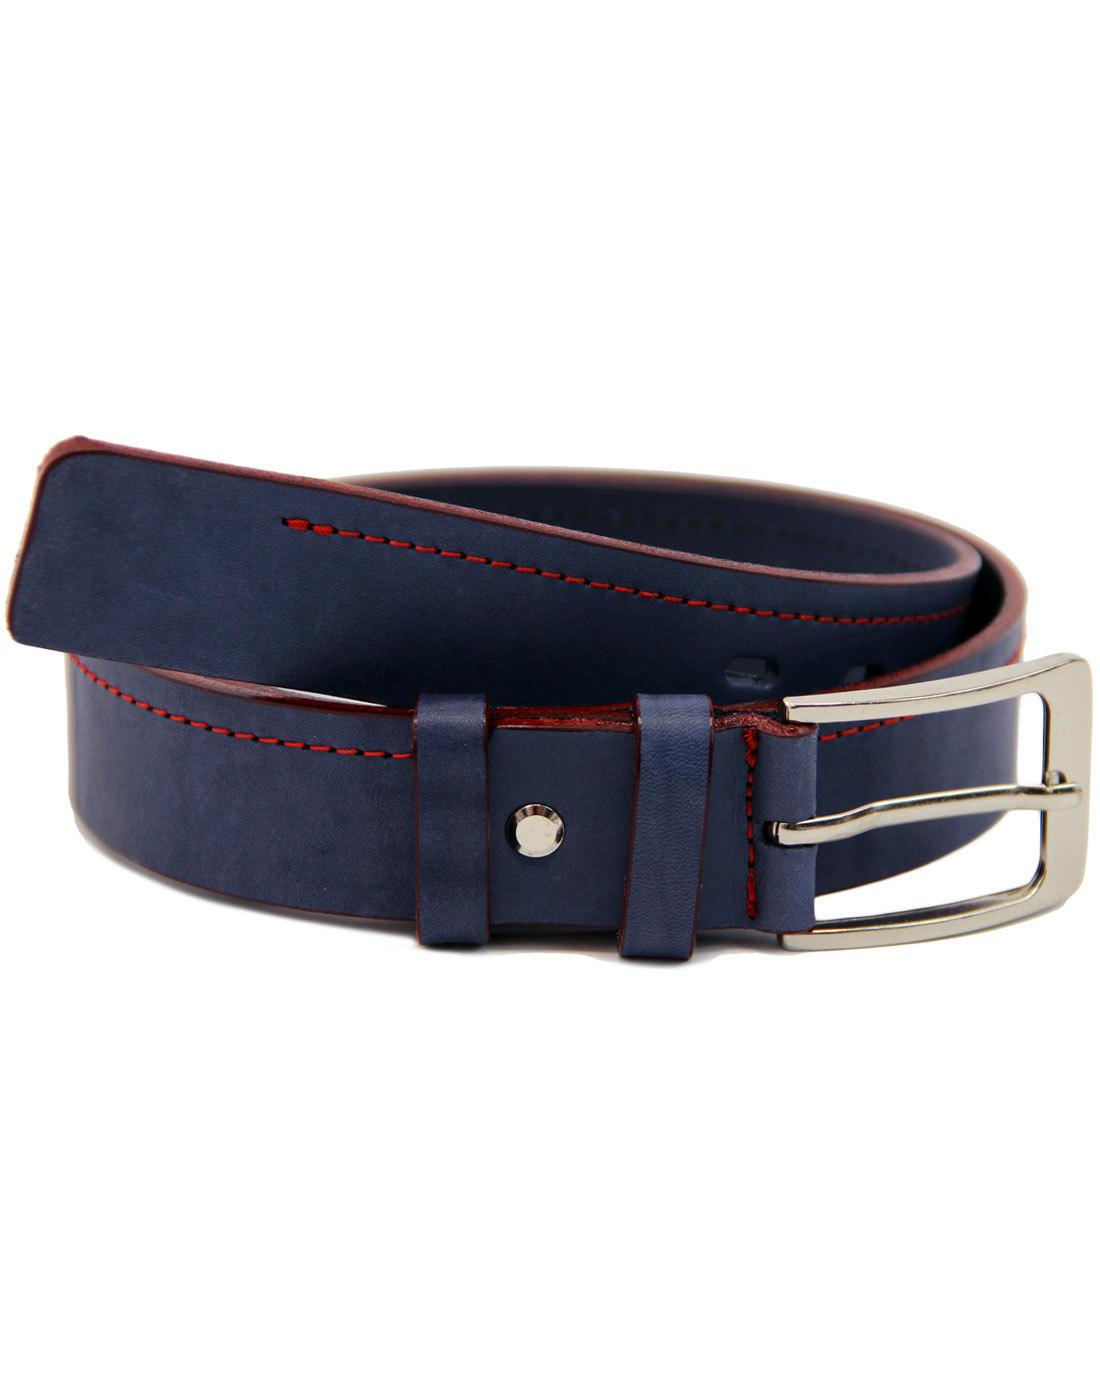 LACUZZO Retro 60s Mod Red Stitch Leather Belt NAVY